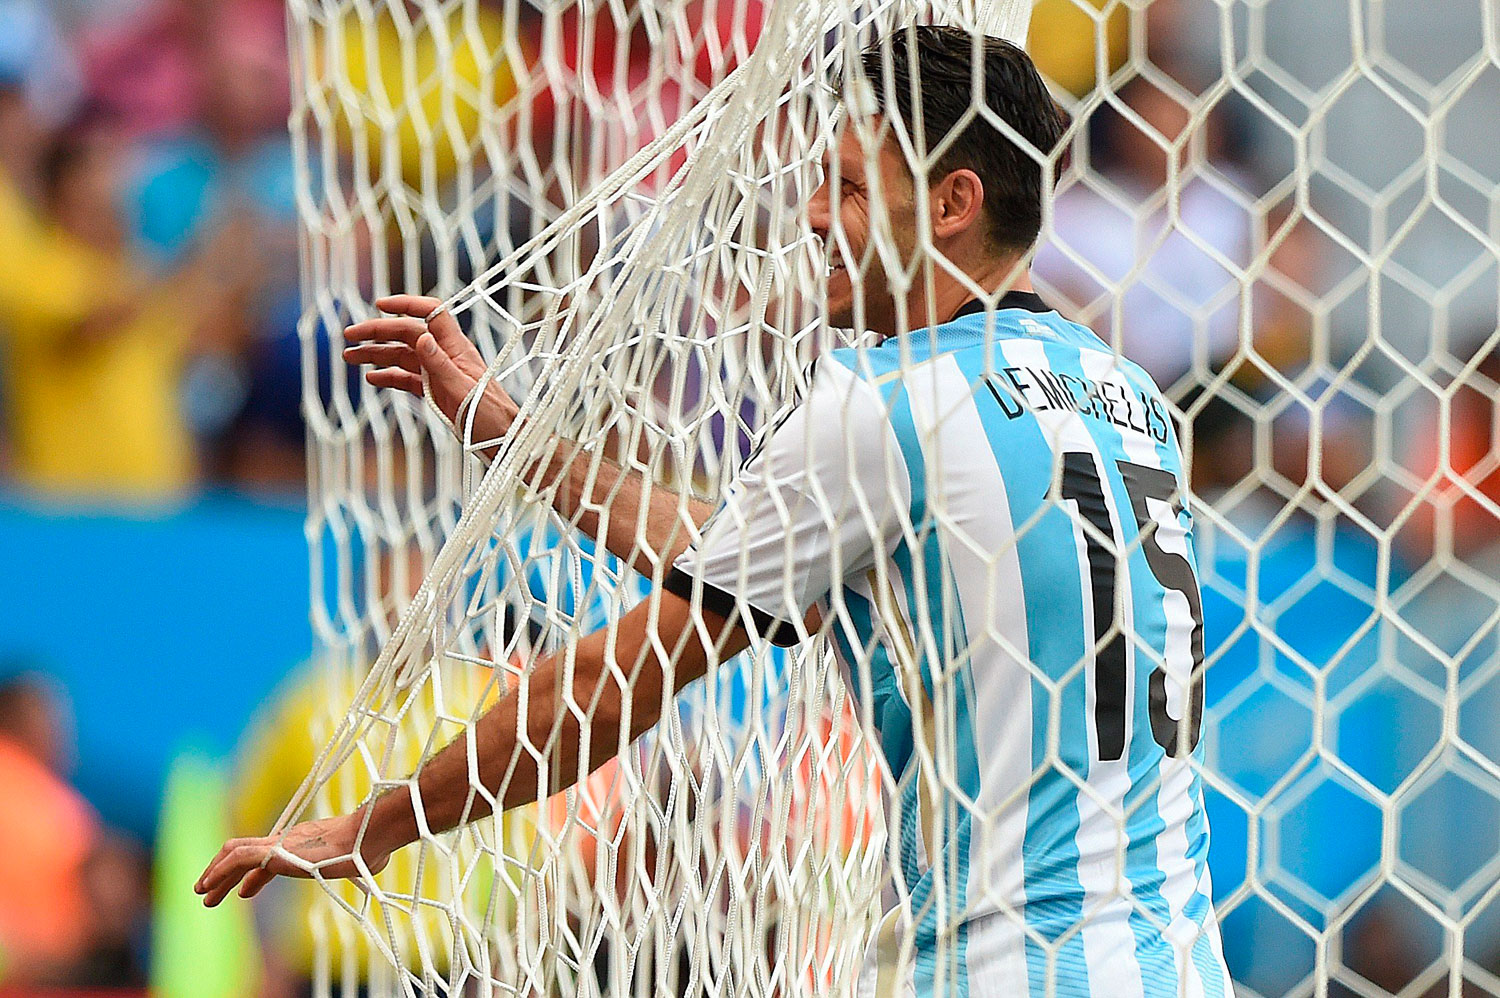 Argentina's defender Martin Demichelis stands in the nets during a quarter-final football match between Argentina and Belgium at the Mane Garrincha National Stadium in Brasilia, Brazil  on July 5, 2014.